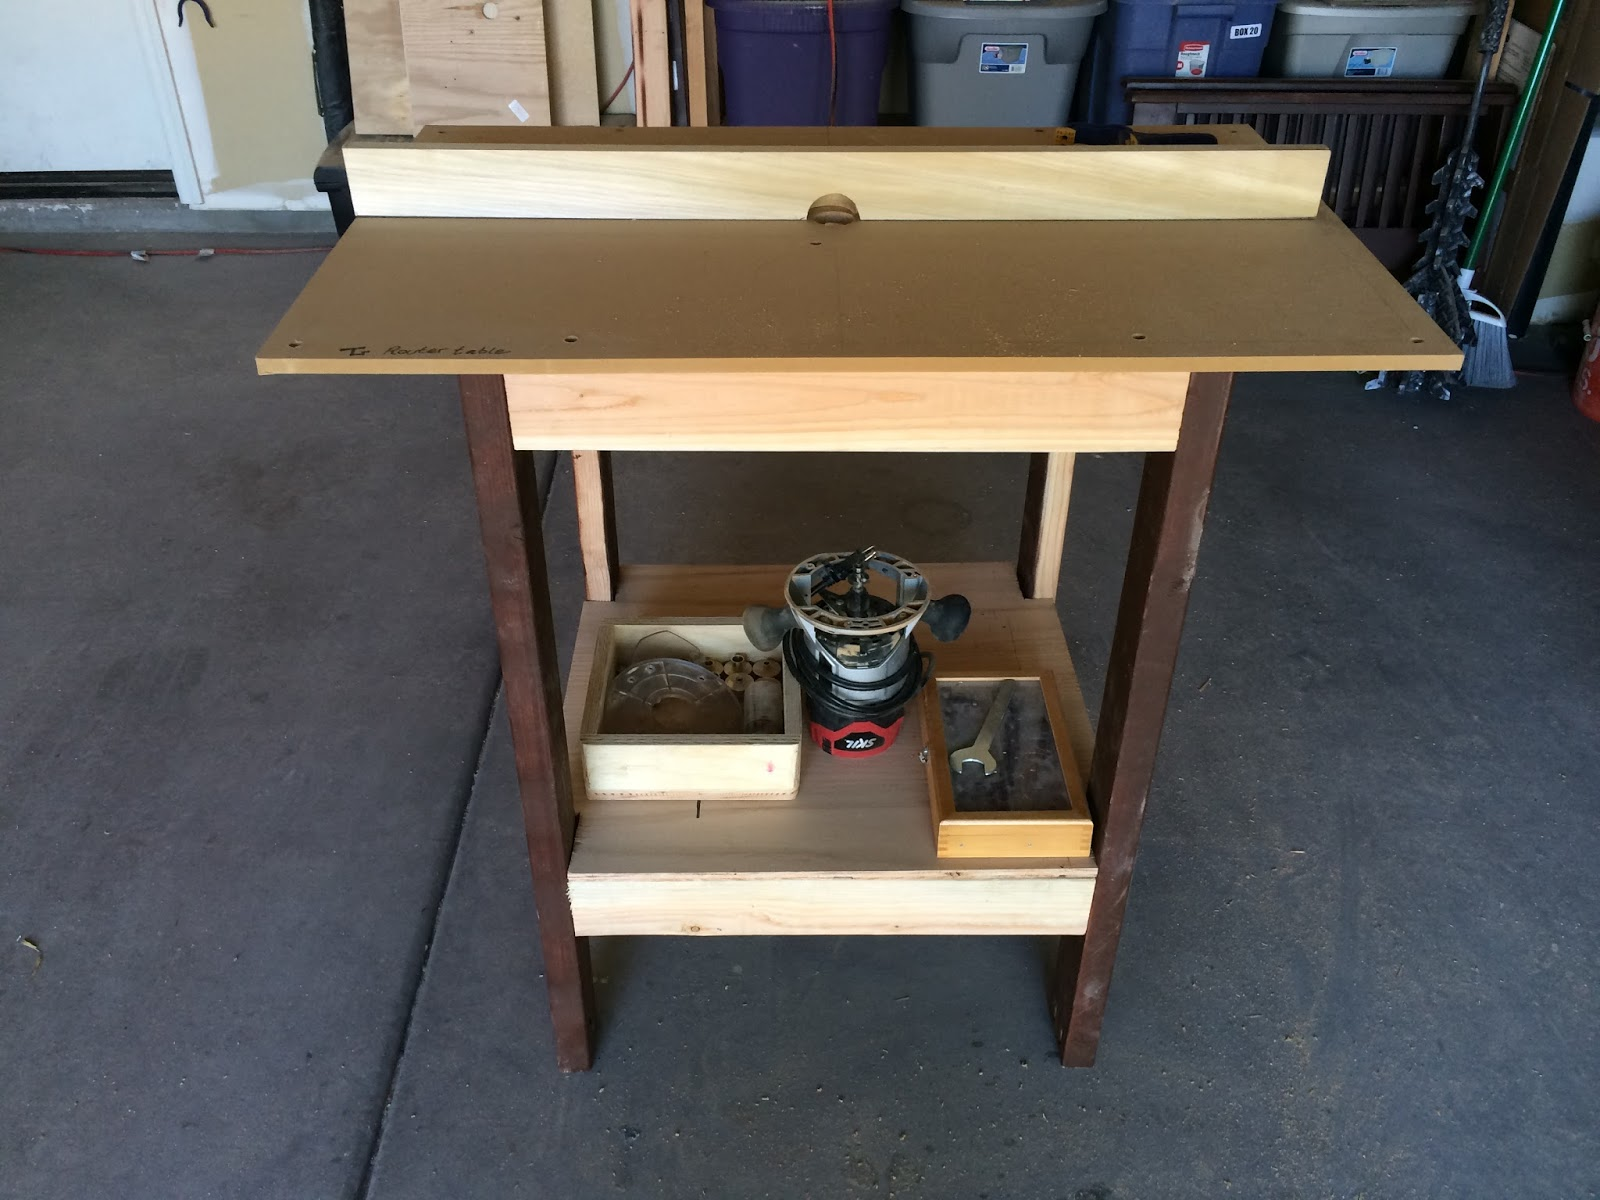 Timbos creations diy bench top router table i used it so often and was becoming an essential part of my workshop however the holes that i made that mounted the router to the table were wearing out keyboard keysfo Image collections